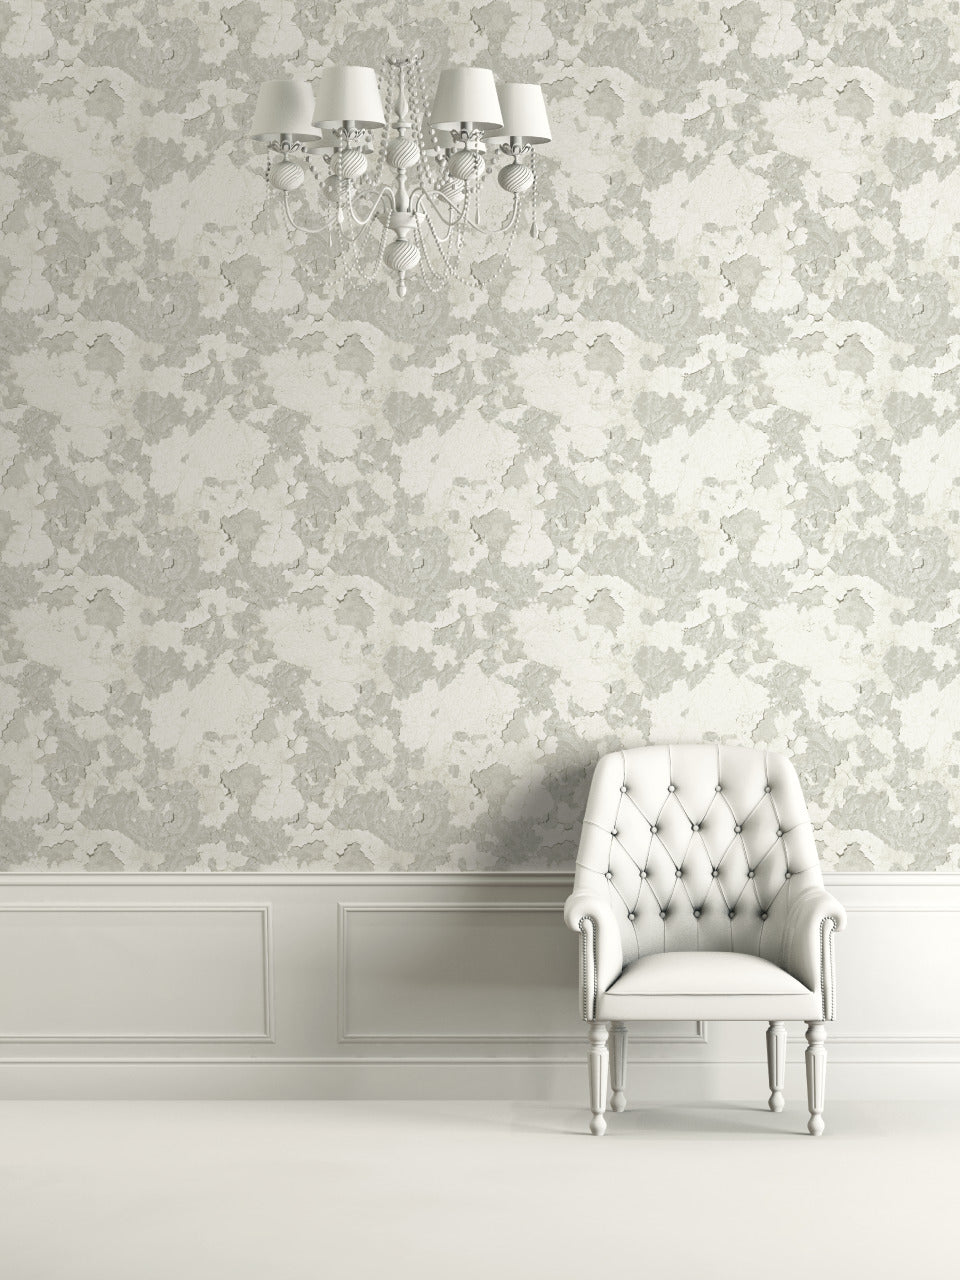 Floral Plaster White and Grey Wallpaper R4789. Floral Wallpaper.